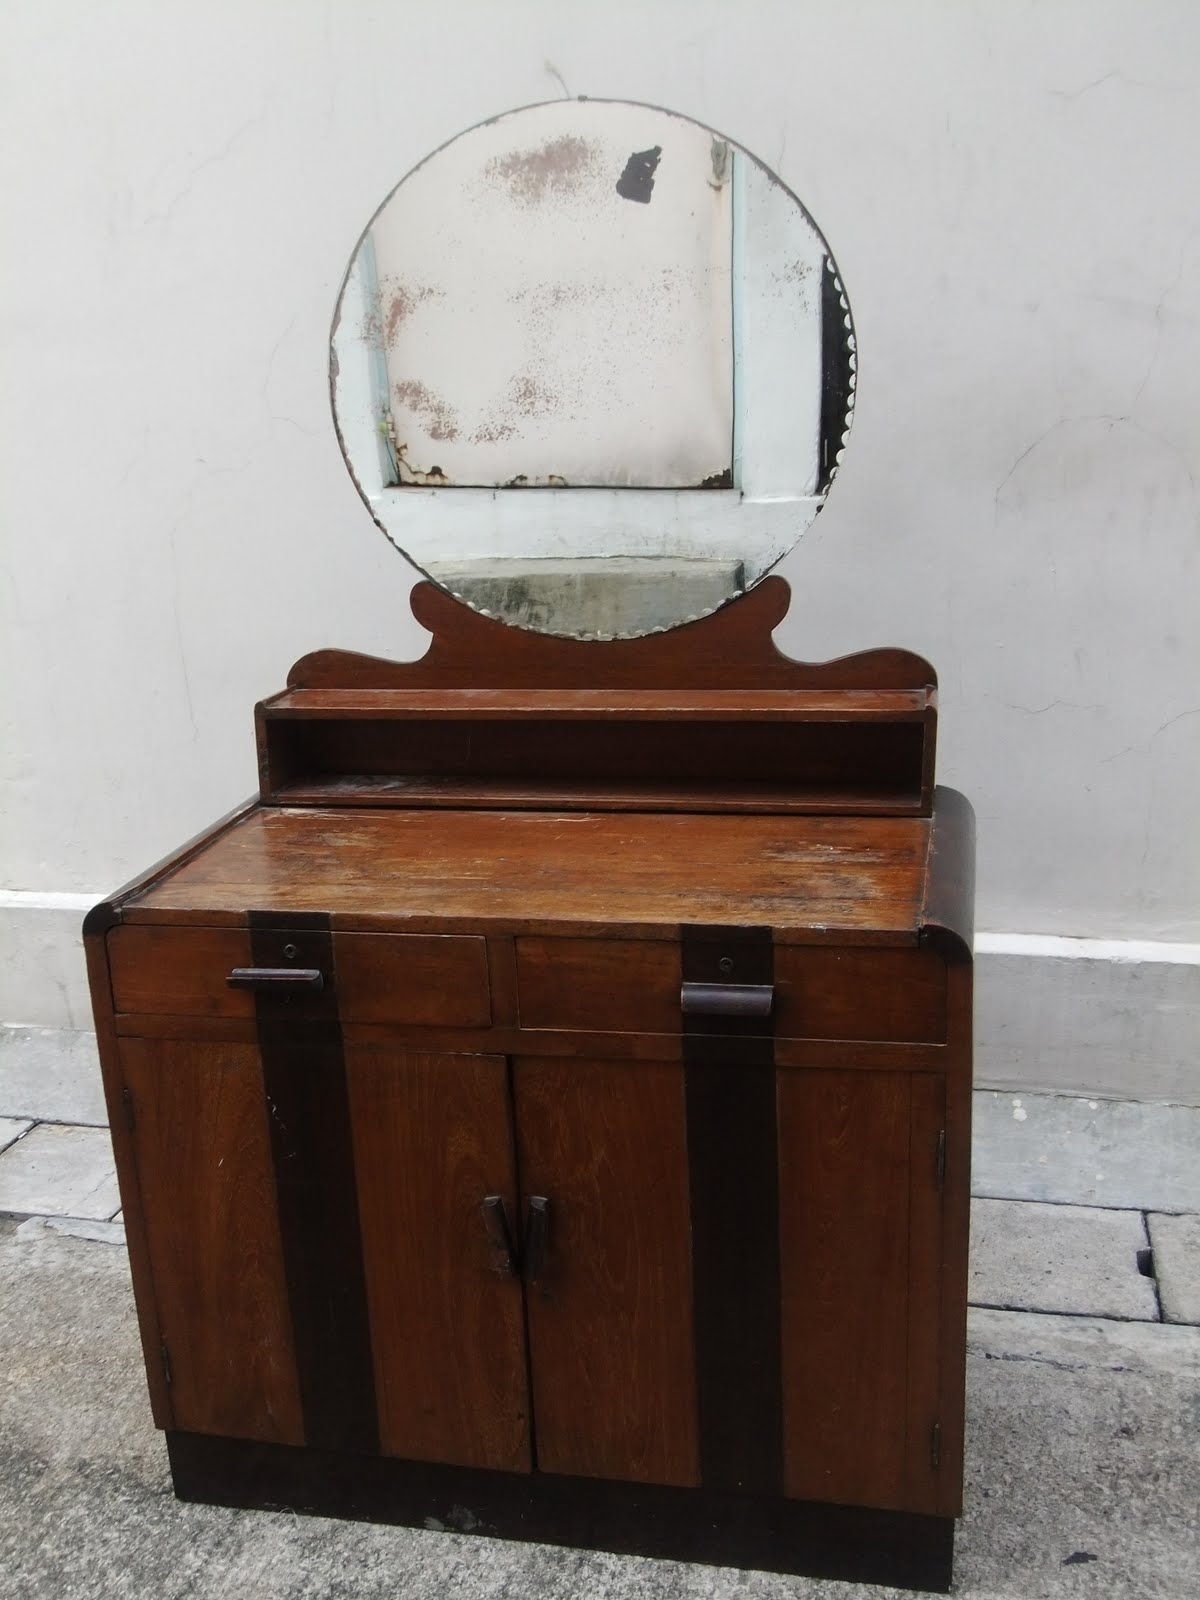 FOR THE LOVE OF VINTAGE Bobs Furniture